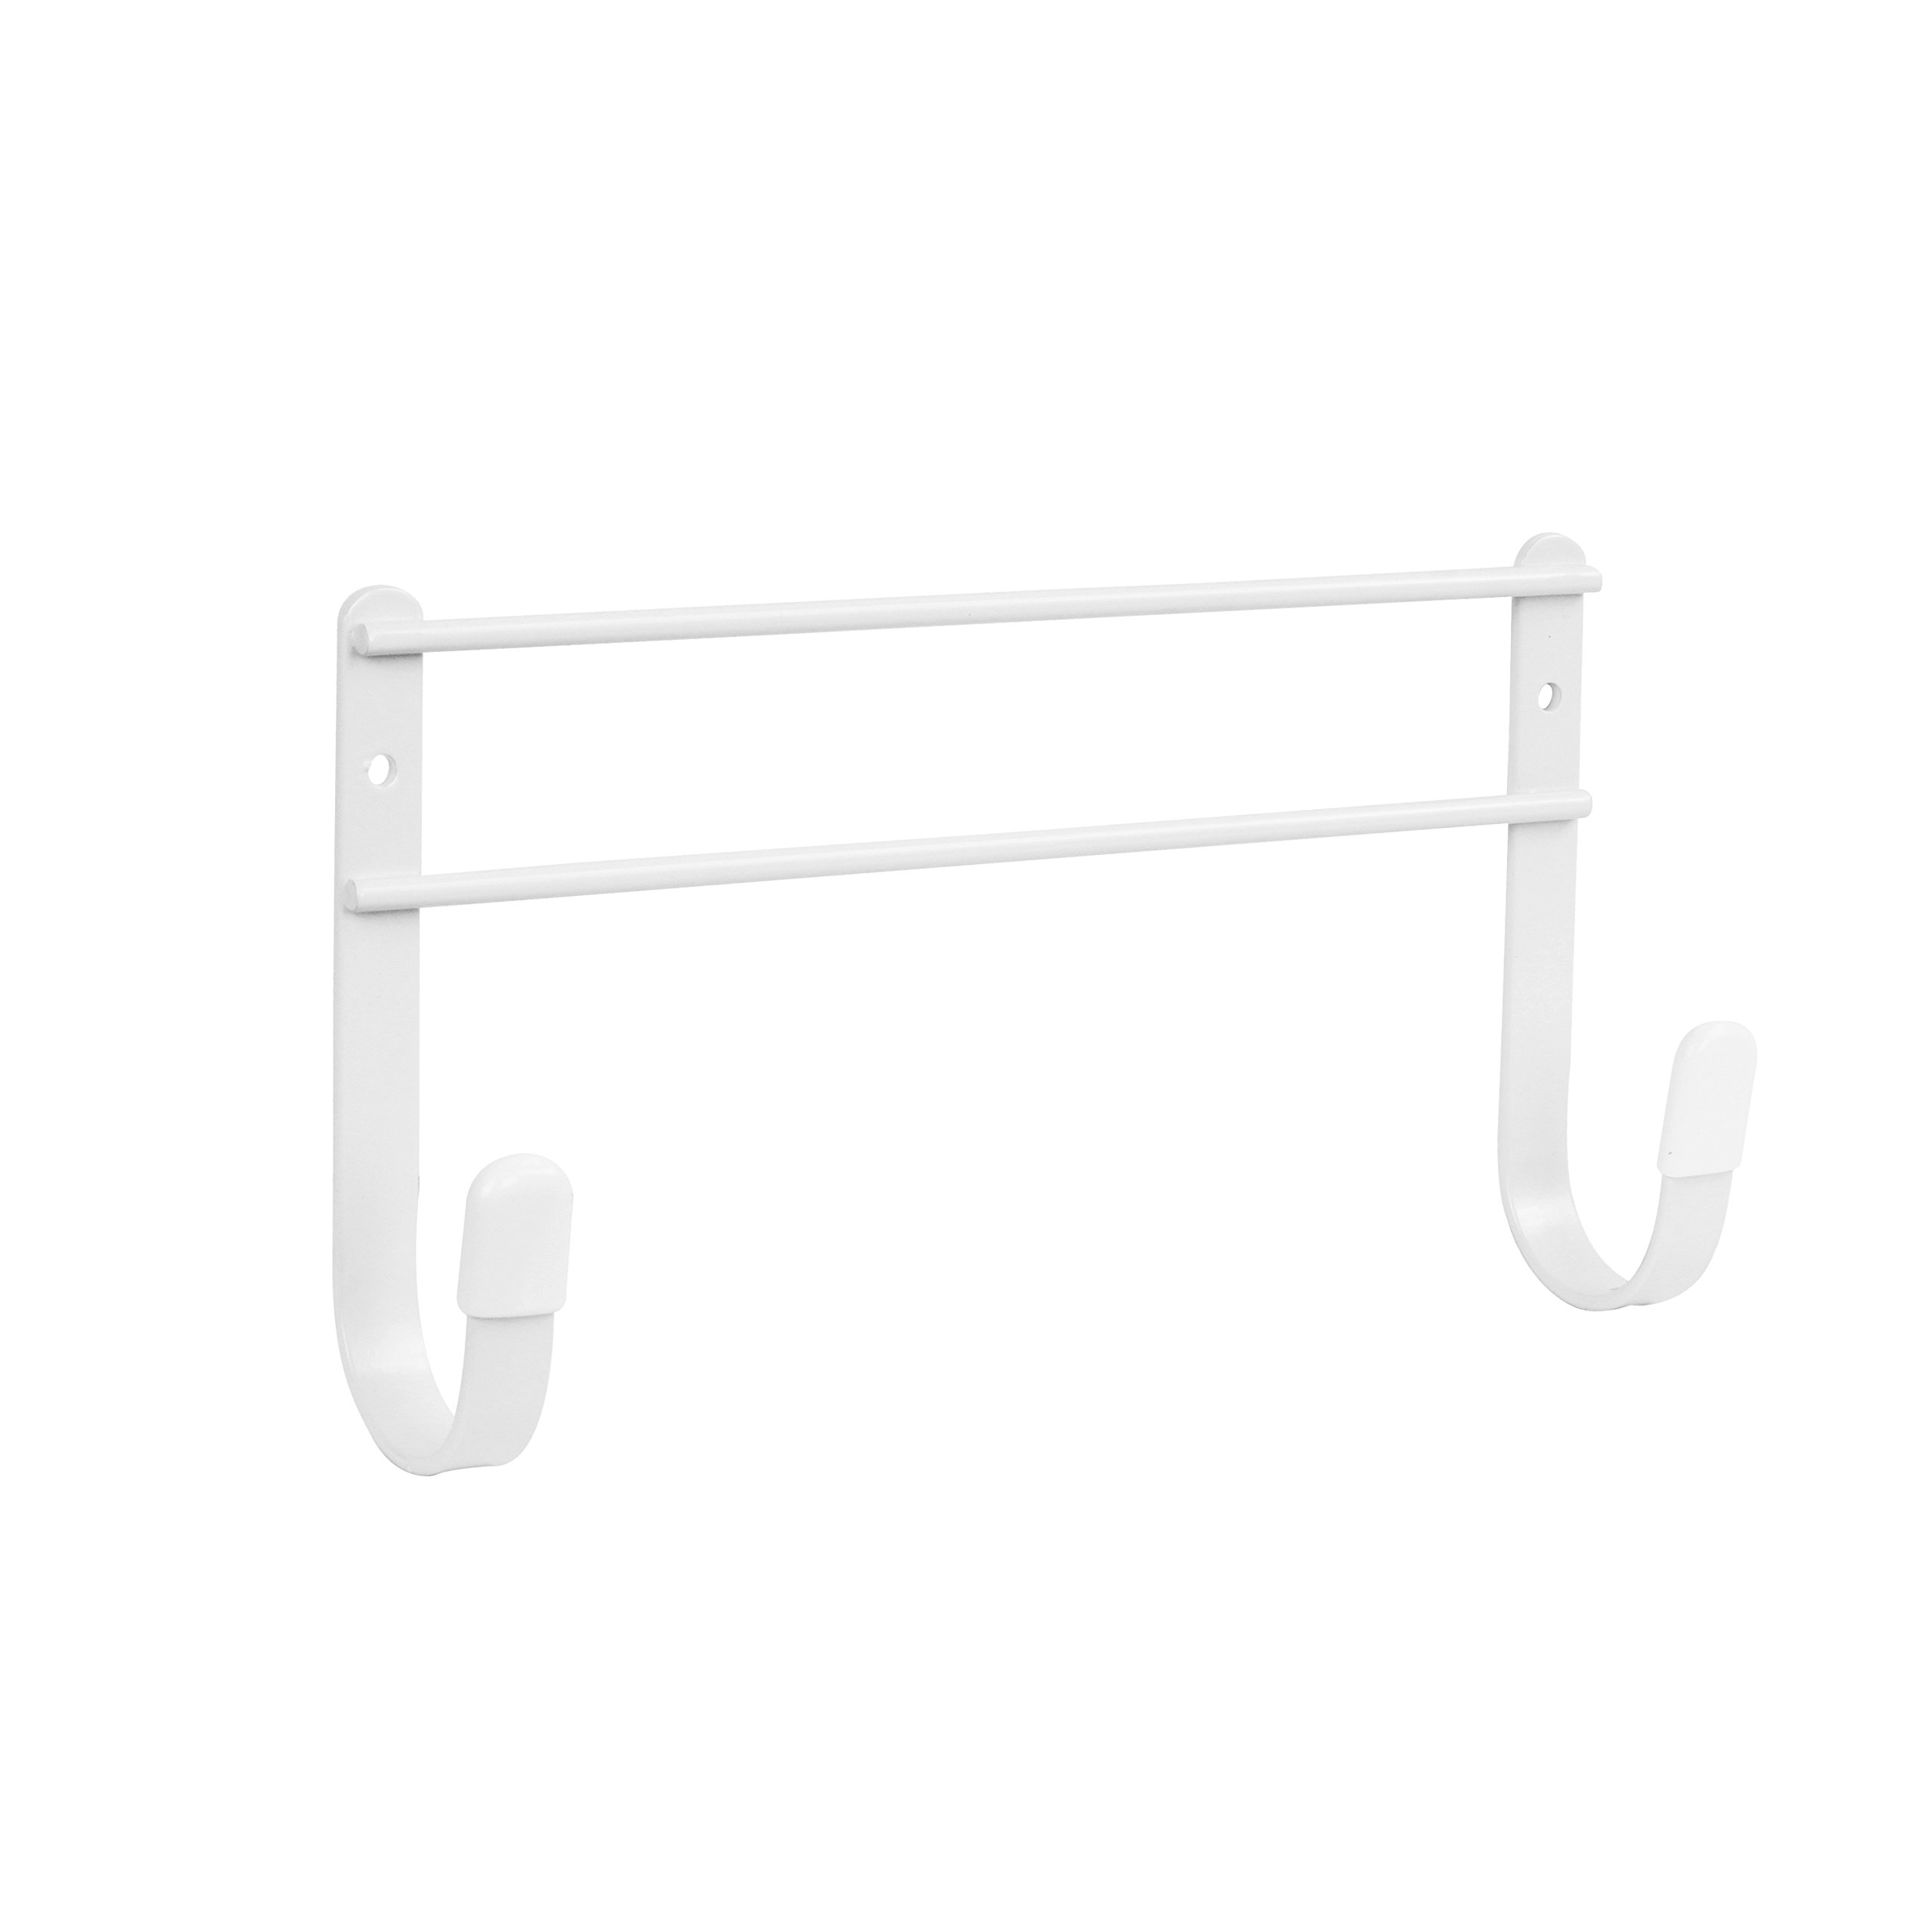 Spectrum Diversified Wall Mount Ironing Board Holder, White by Spectrum Diversified